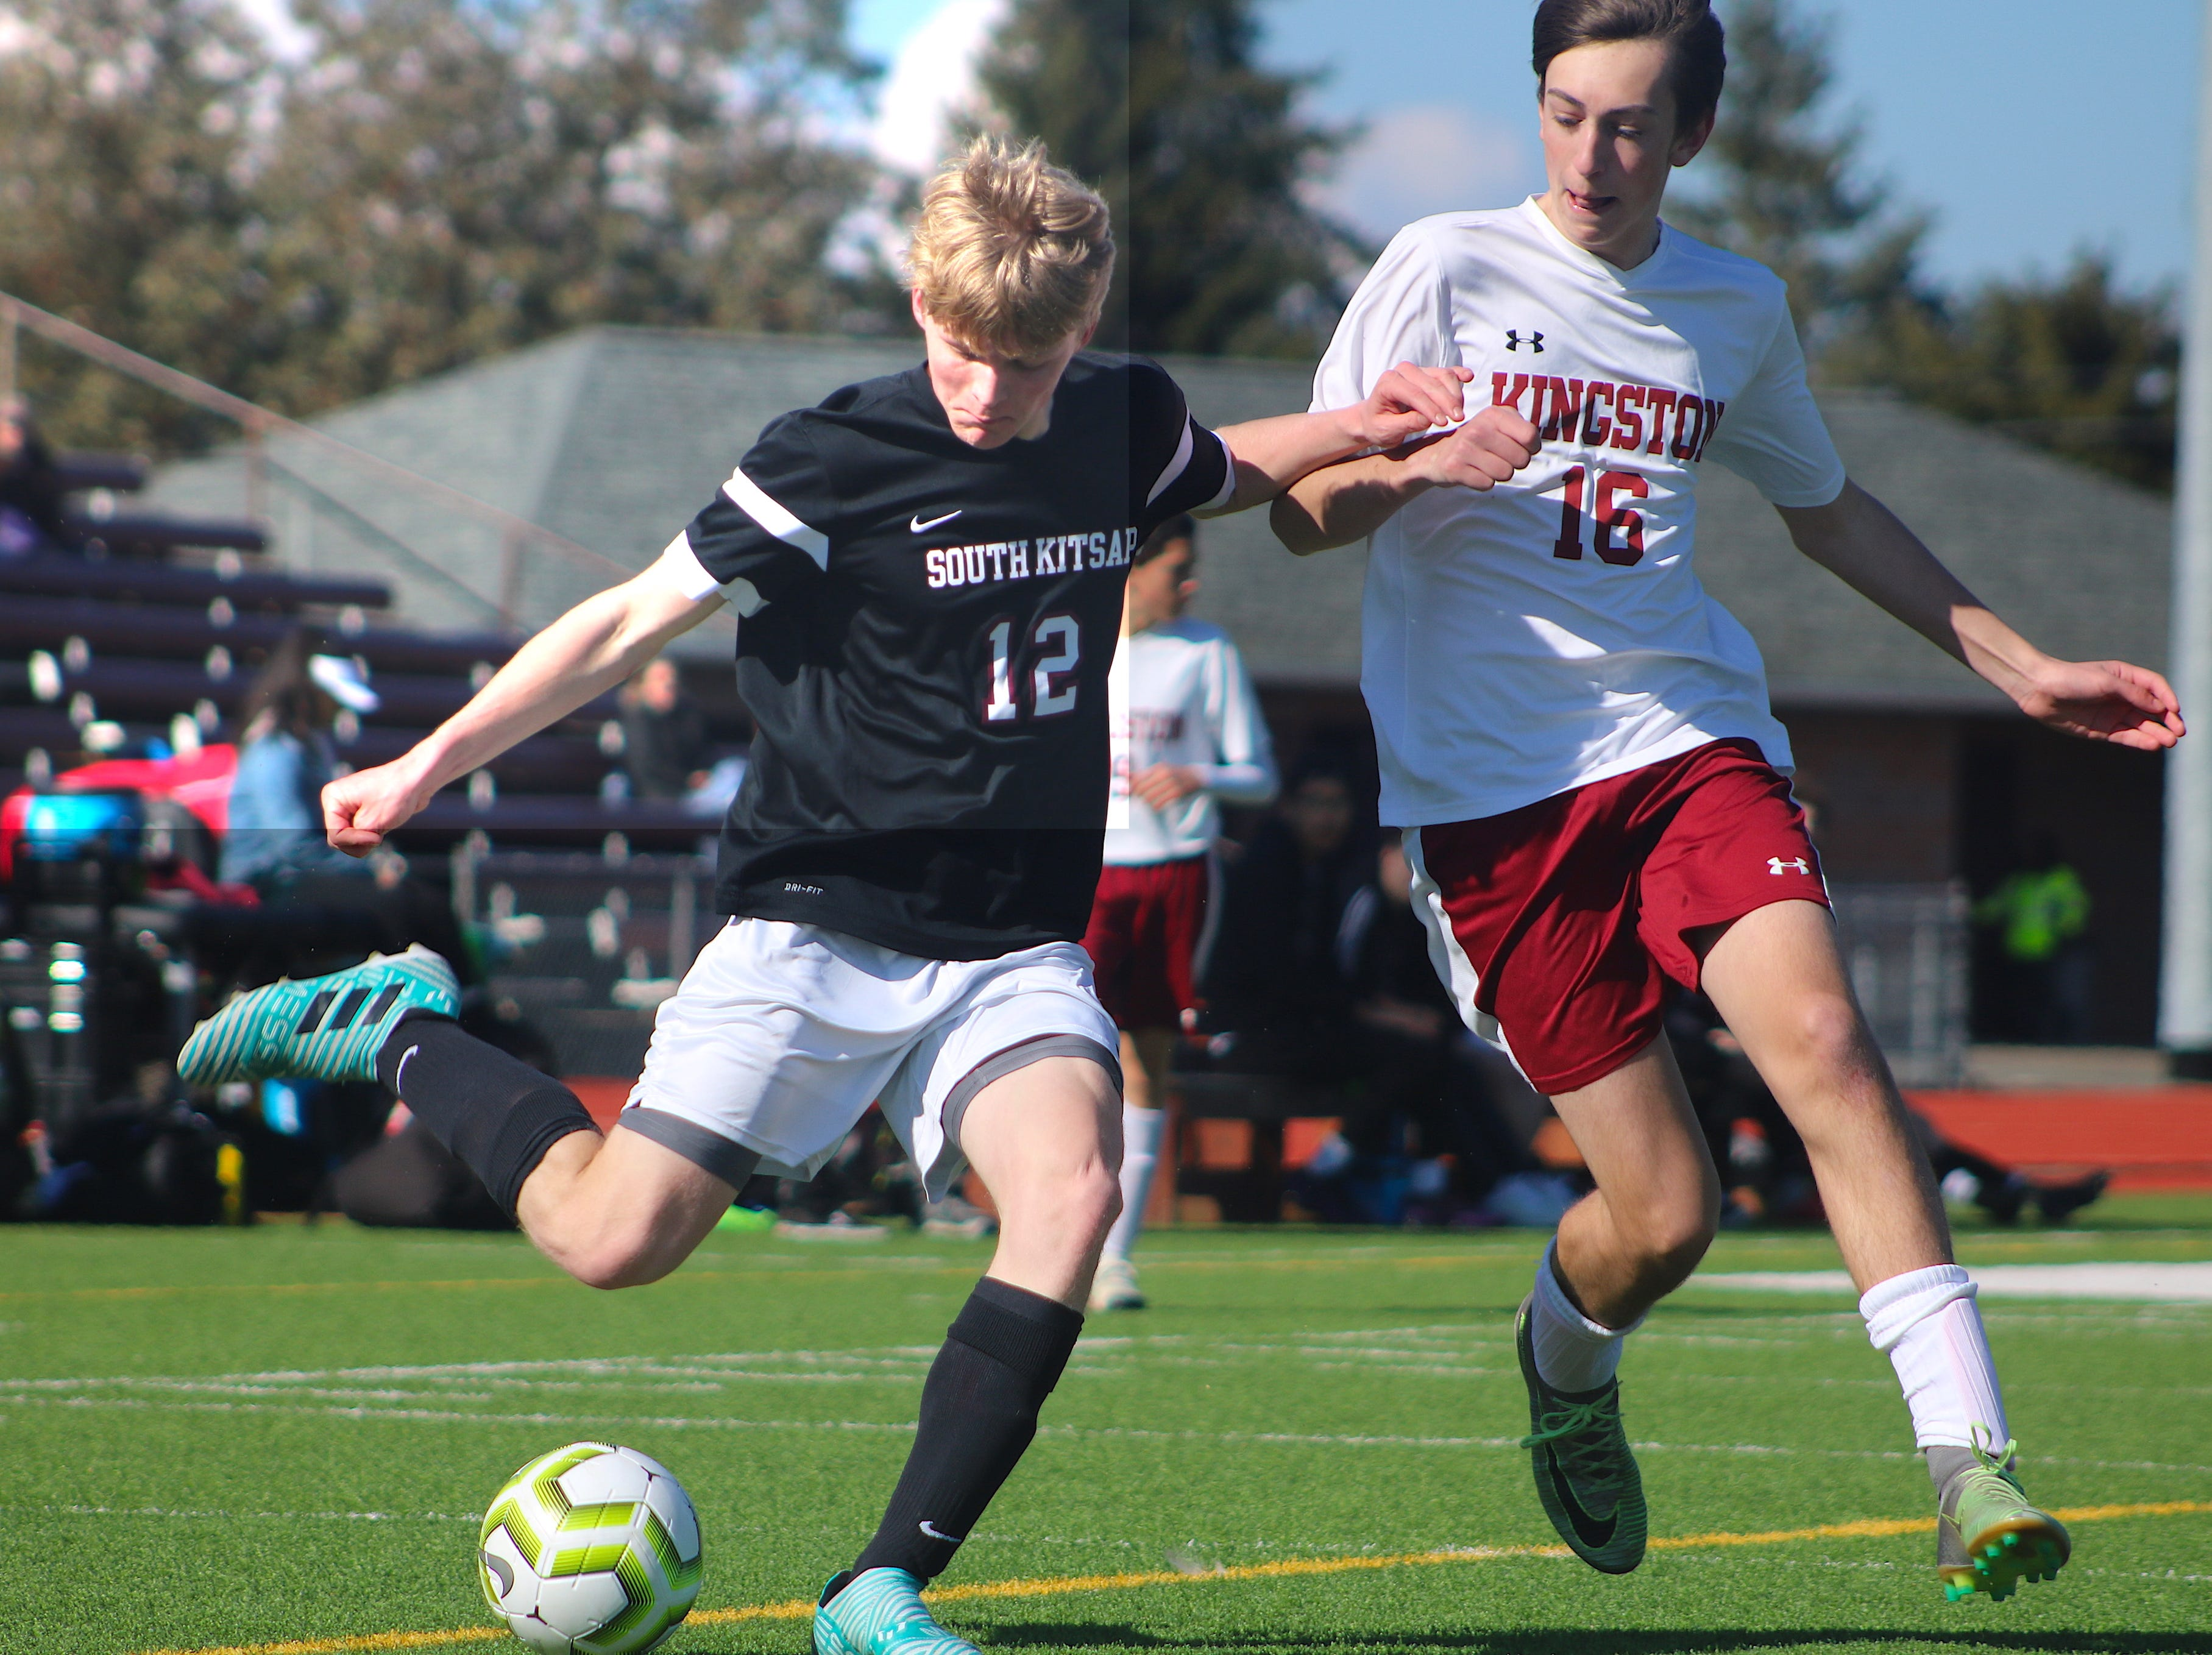 South Kitsap's Logan Anchick (left) prepares to cross the ball while Kingston's Eric Steele defends during Saturday's boys soccer game in Port Orchard.